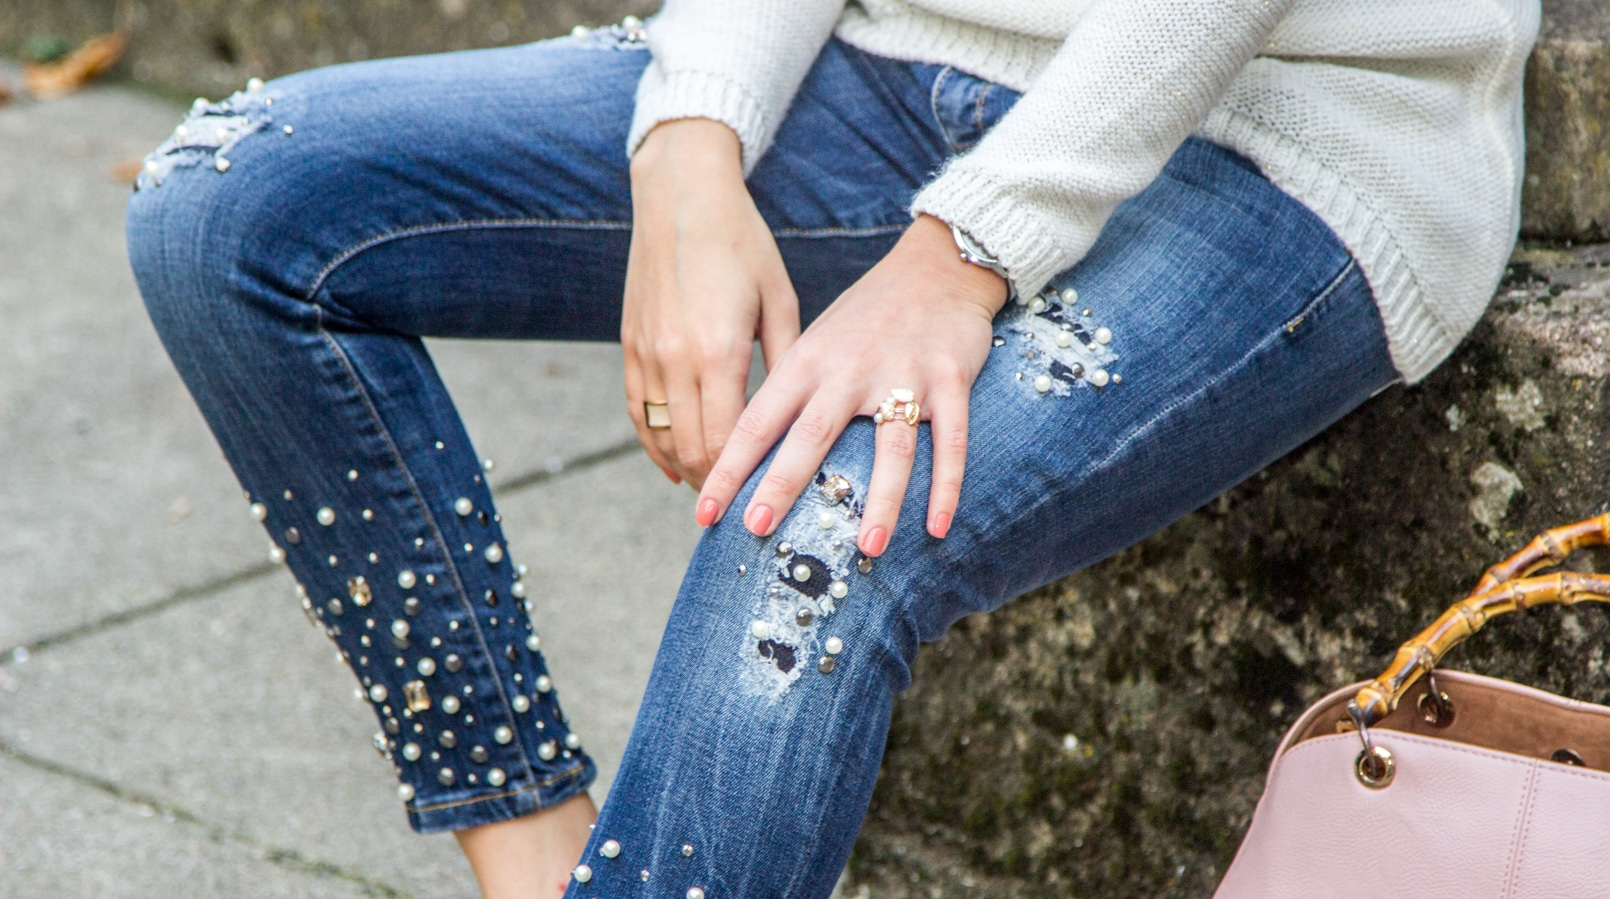 Le Fashionaire The devils in the details fashion inspiration white knit sweater wool namib denim jeans sparkle pearls namib pale pink bamboo parfois bag 8075F EN